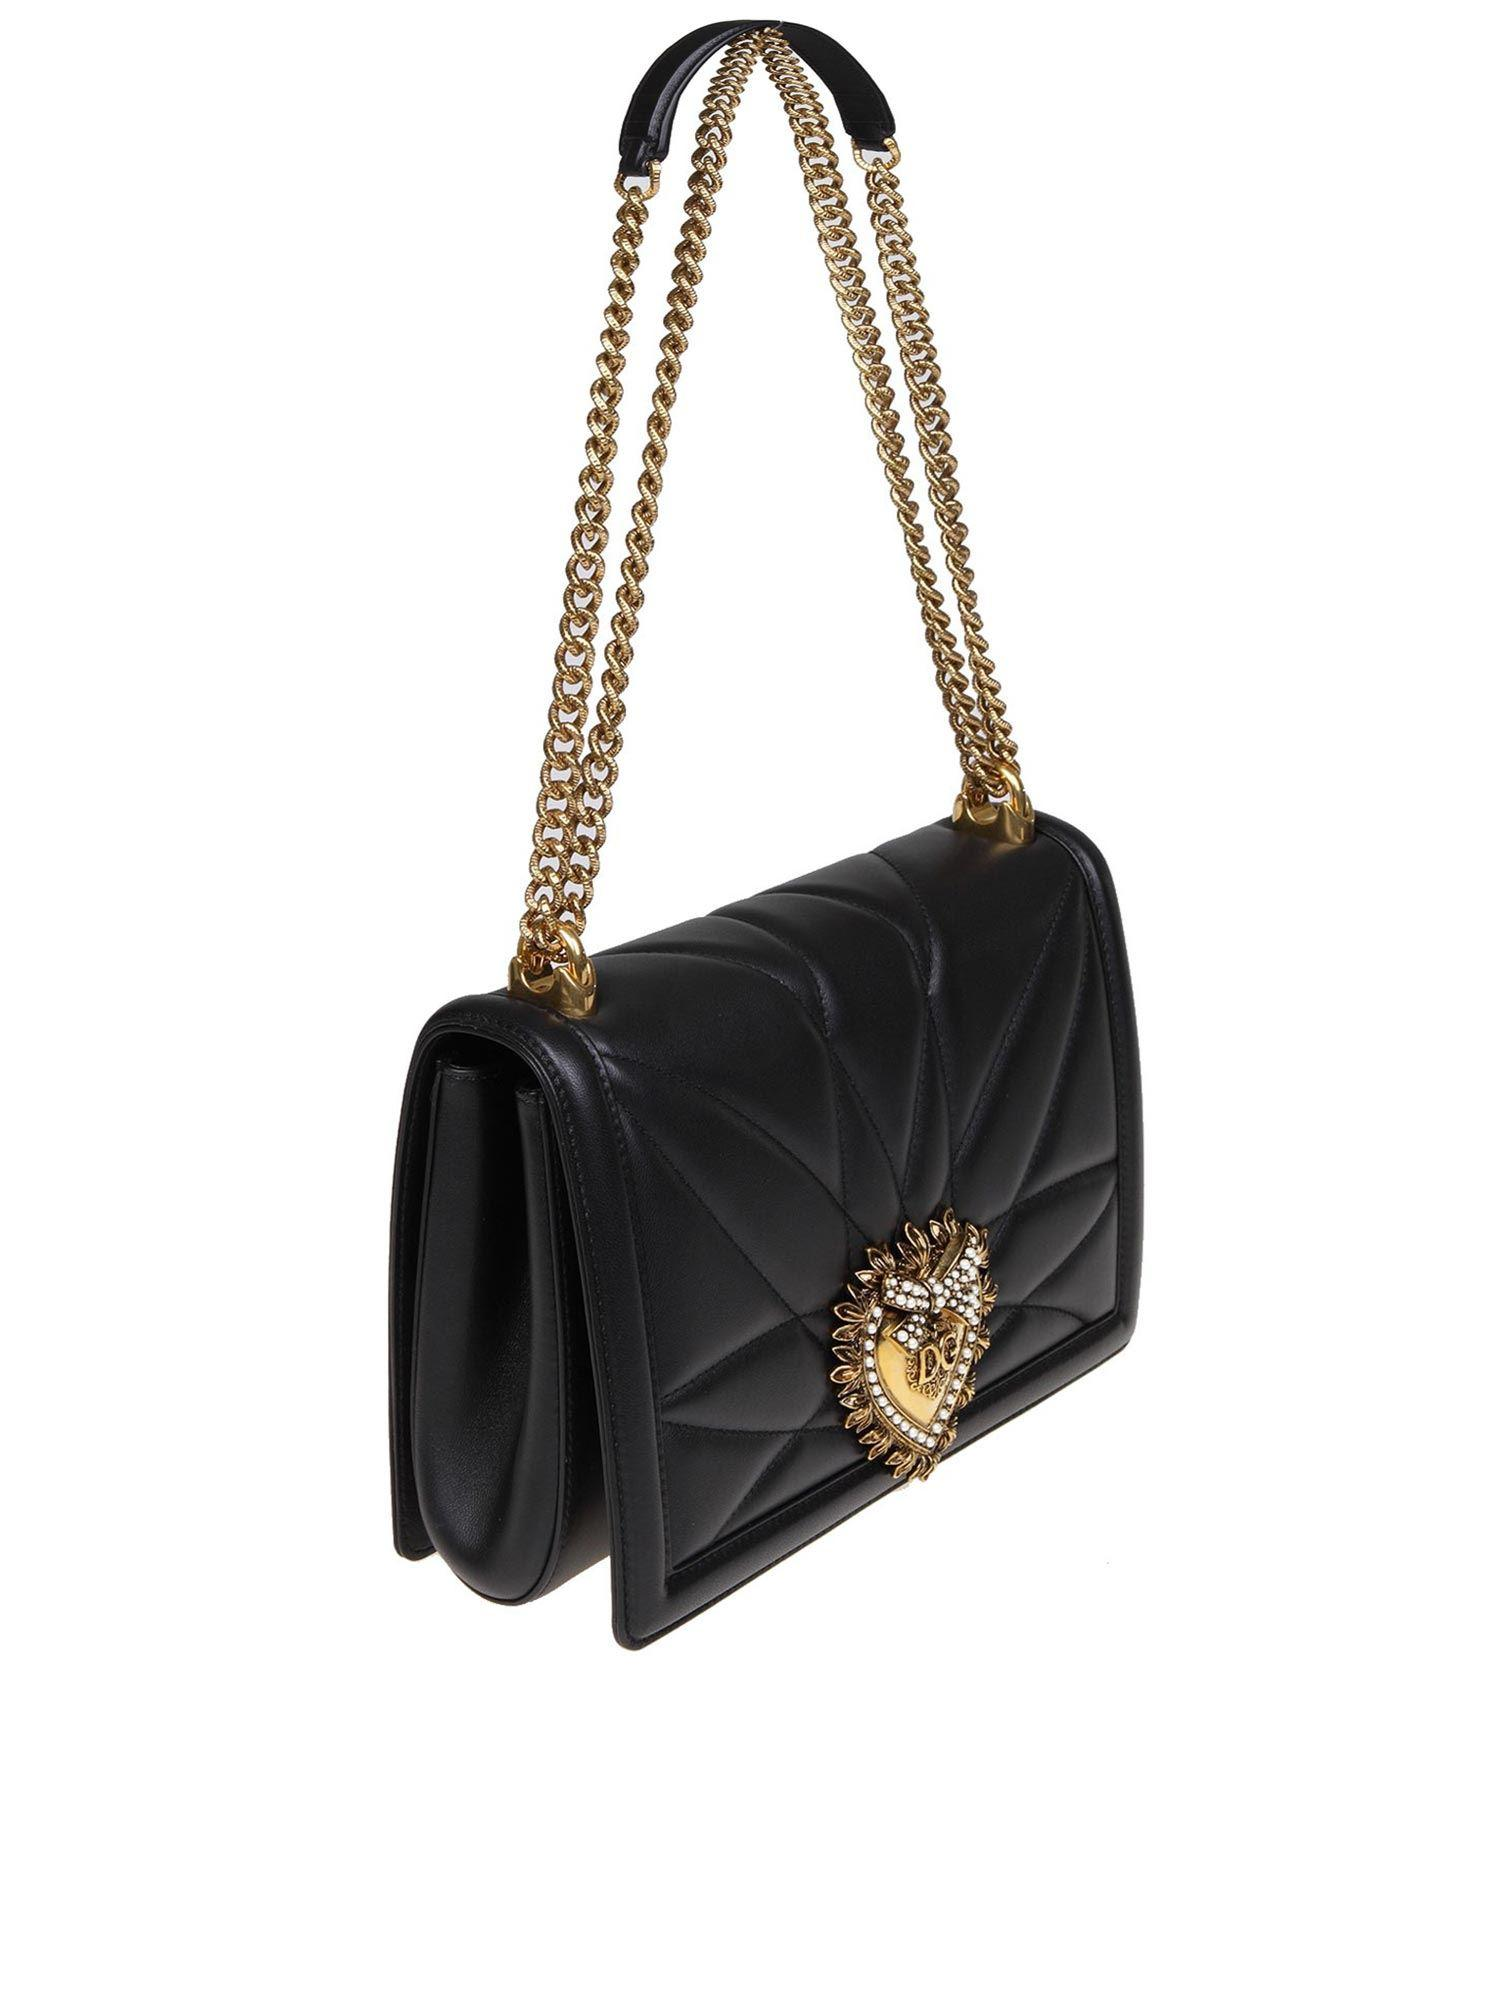 8b3bde2381 Lyst - Dolce   Gabbana Large Devotion Bag In Quilted Nappa Leather in Black  - Save 8%